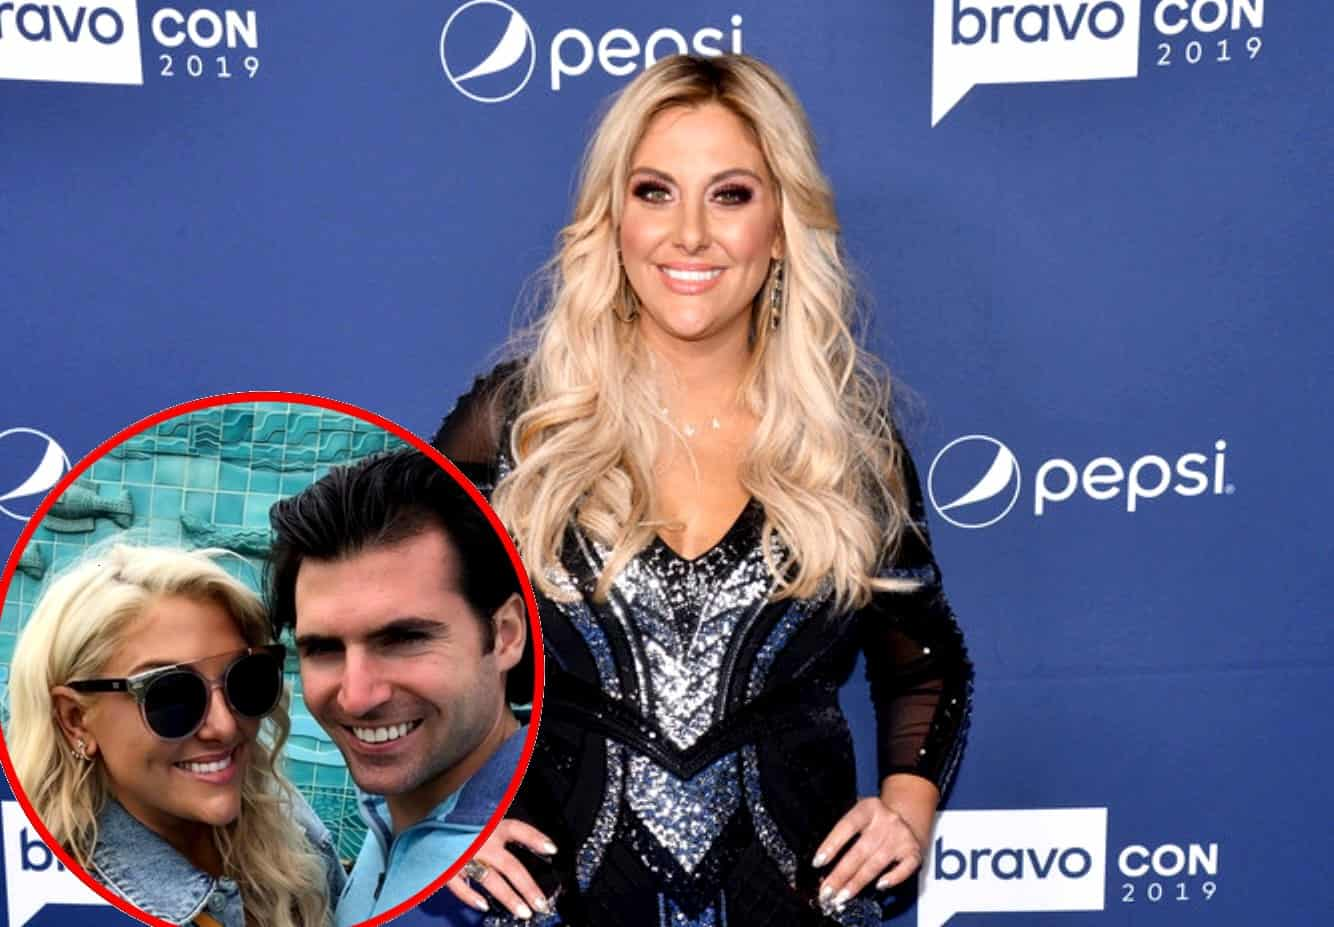 EXCLUSIVE: Gina Kirschenheiter's Dr. Hottie Revealed as Dr. Brian Fiani! Meet the Brain Surgeon Who Dated the RHOC Star During Season 14 and See Photos of Them Together